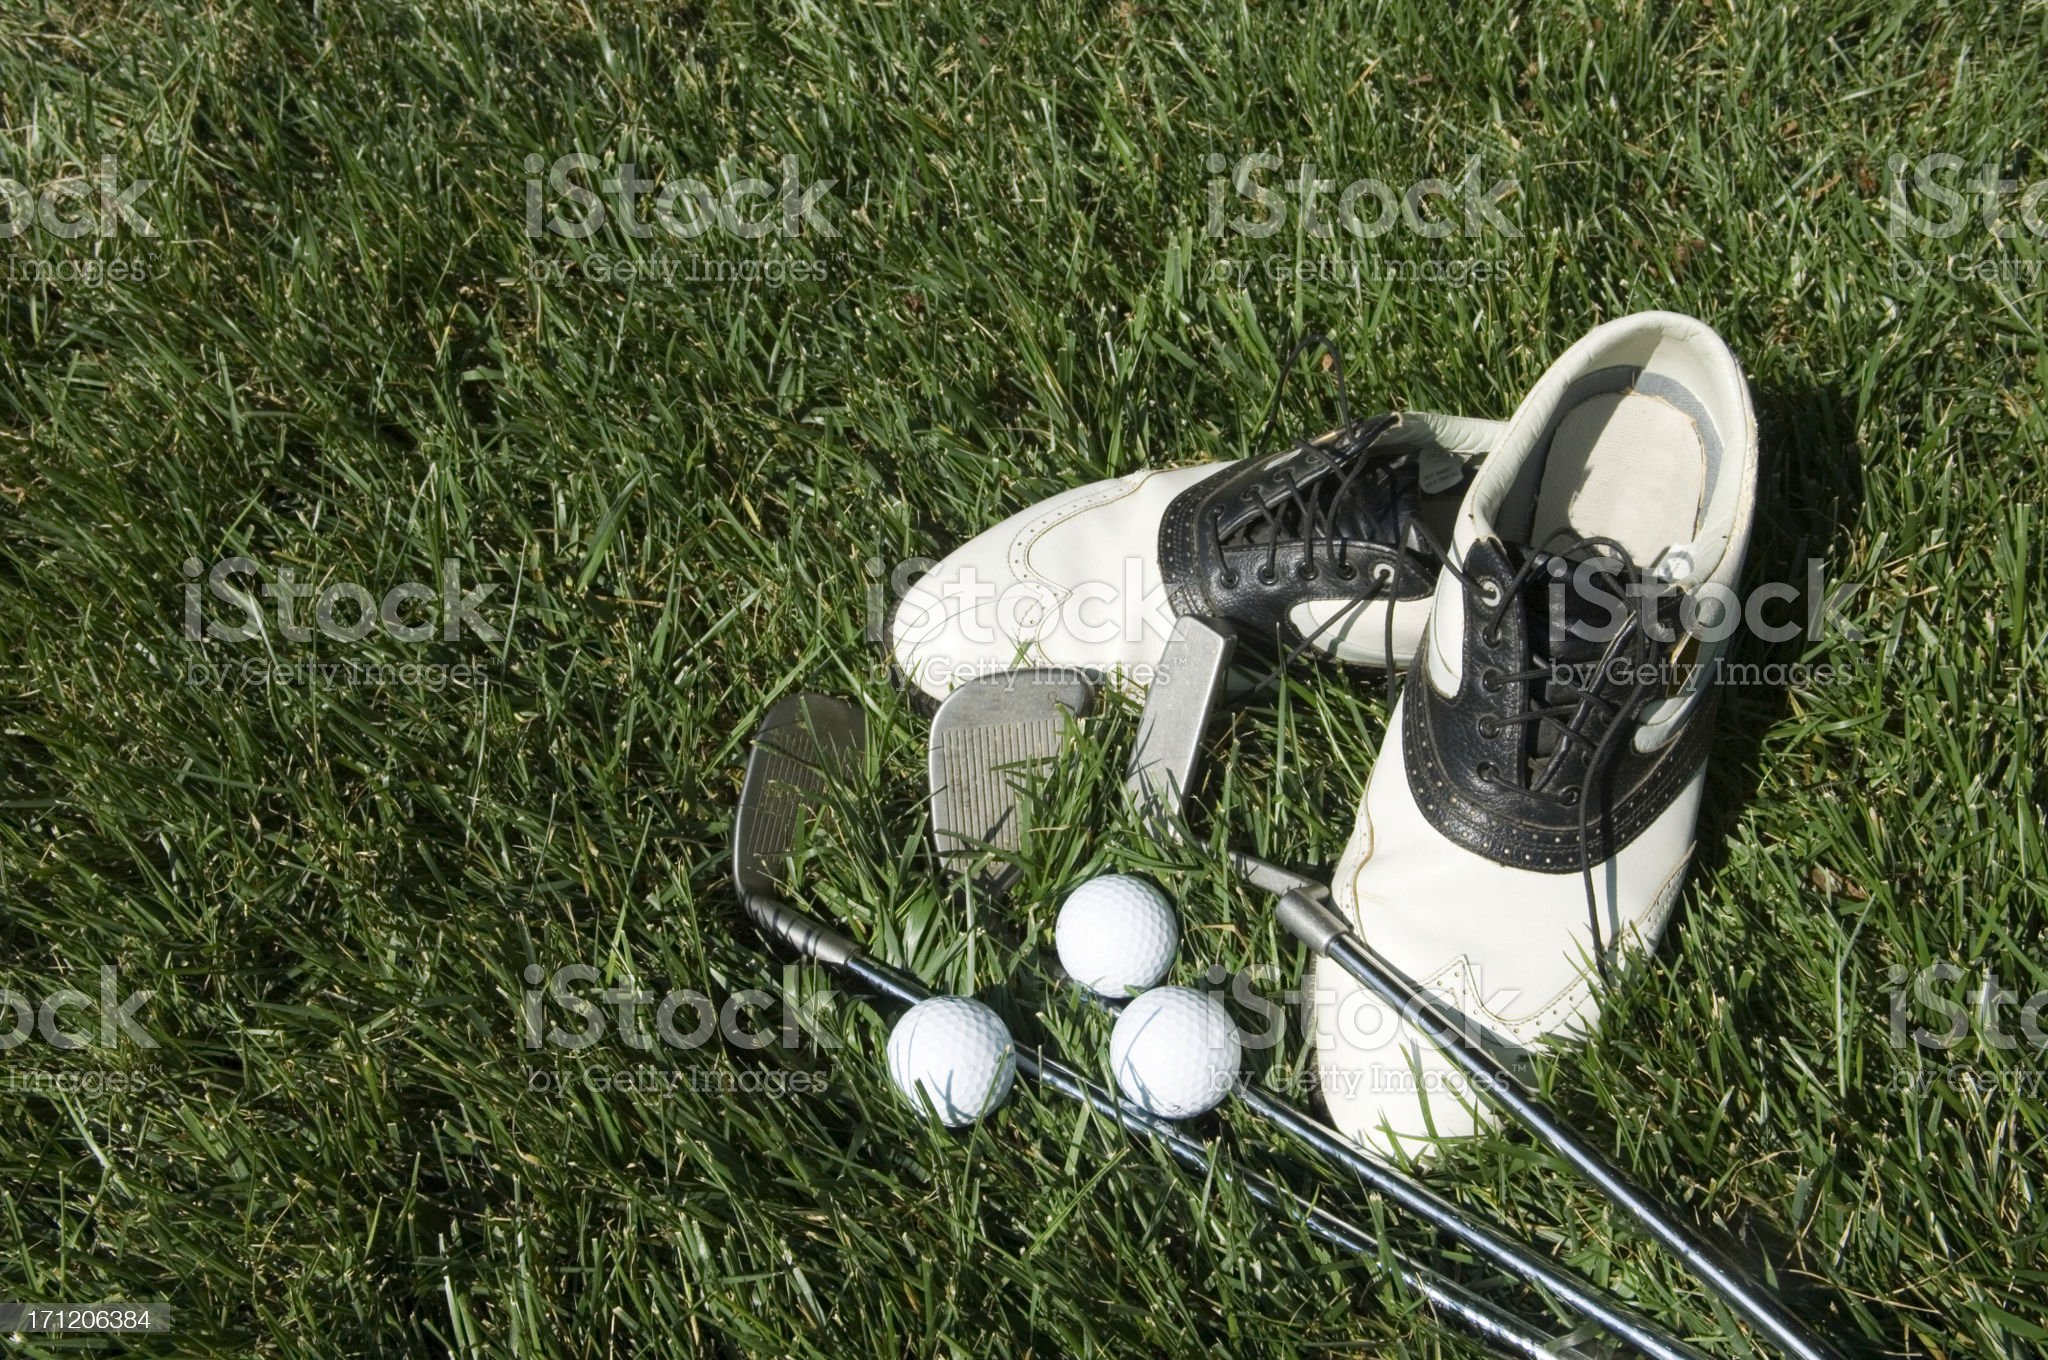 Golf Equipment At The Ready royalty-free stock photo